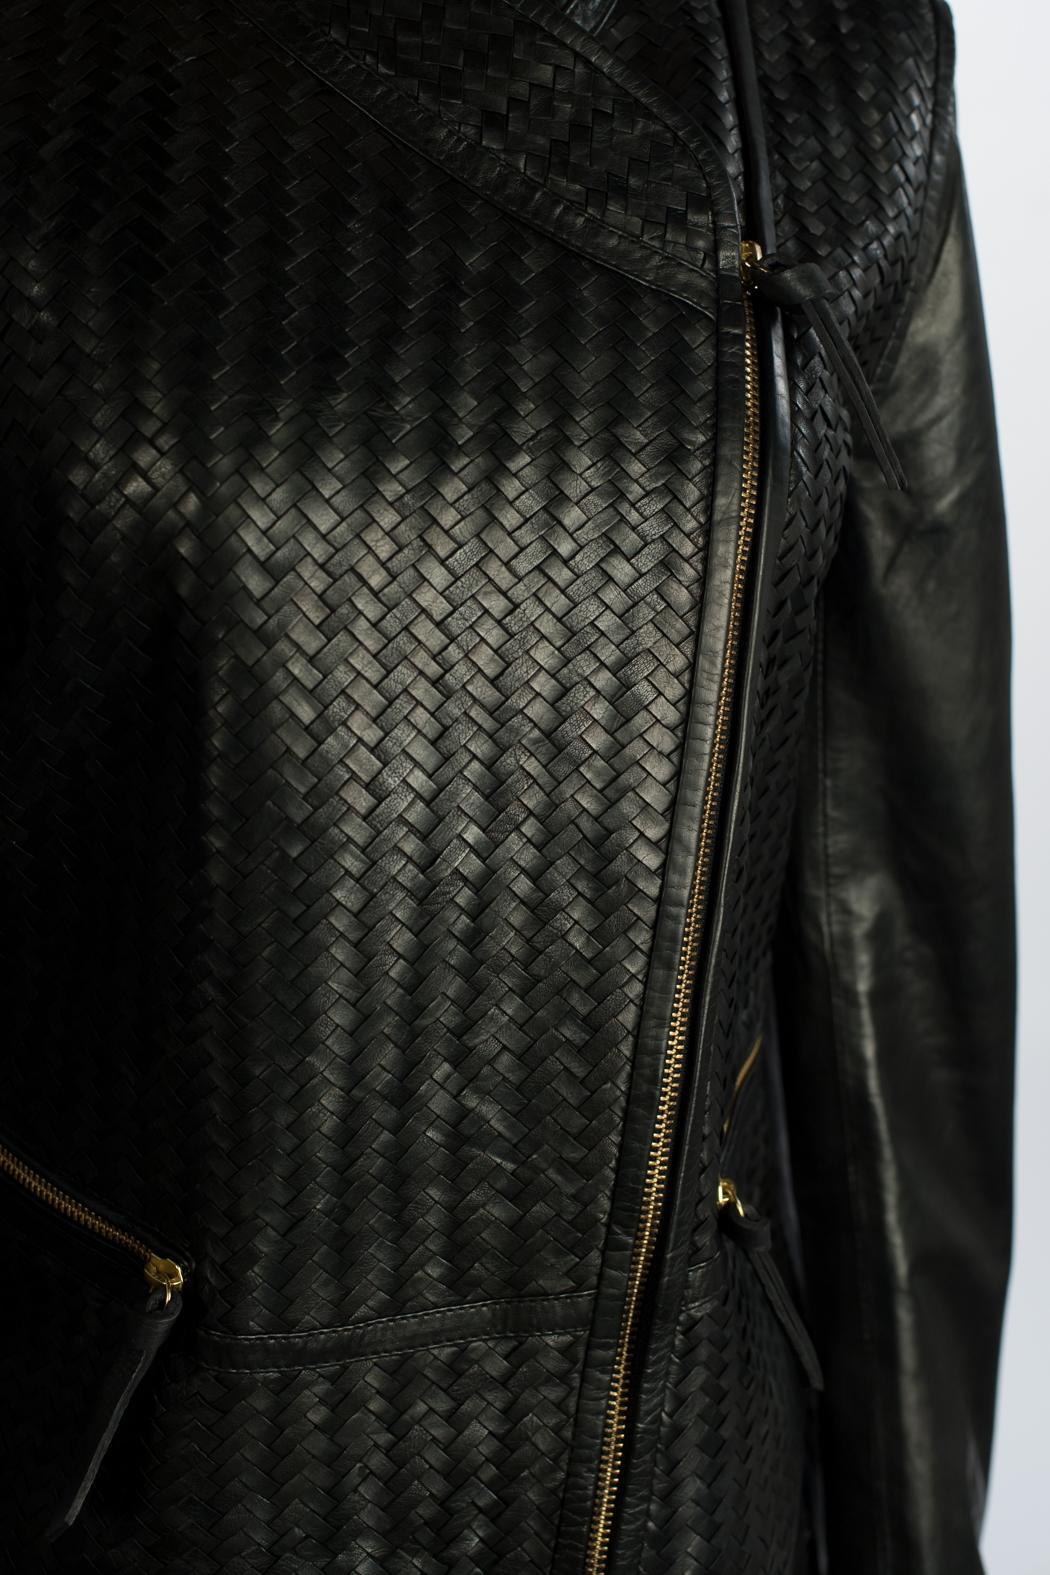 9fe3e6551 DAY Birger et Mikkelsen Woven Leather Jacket from Melbourne by ...